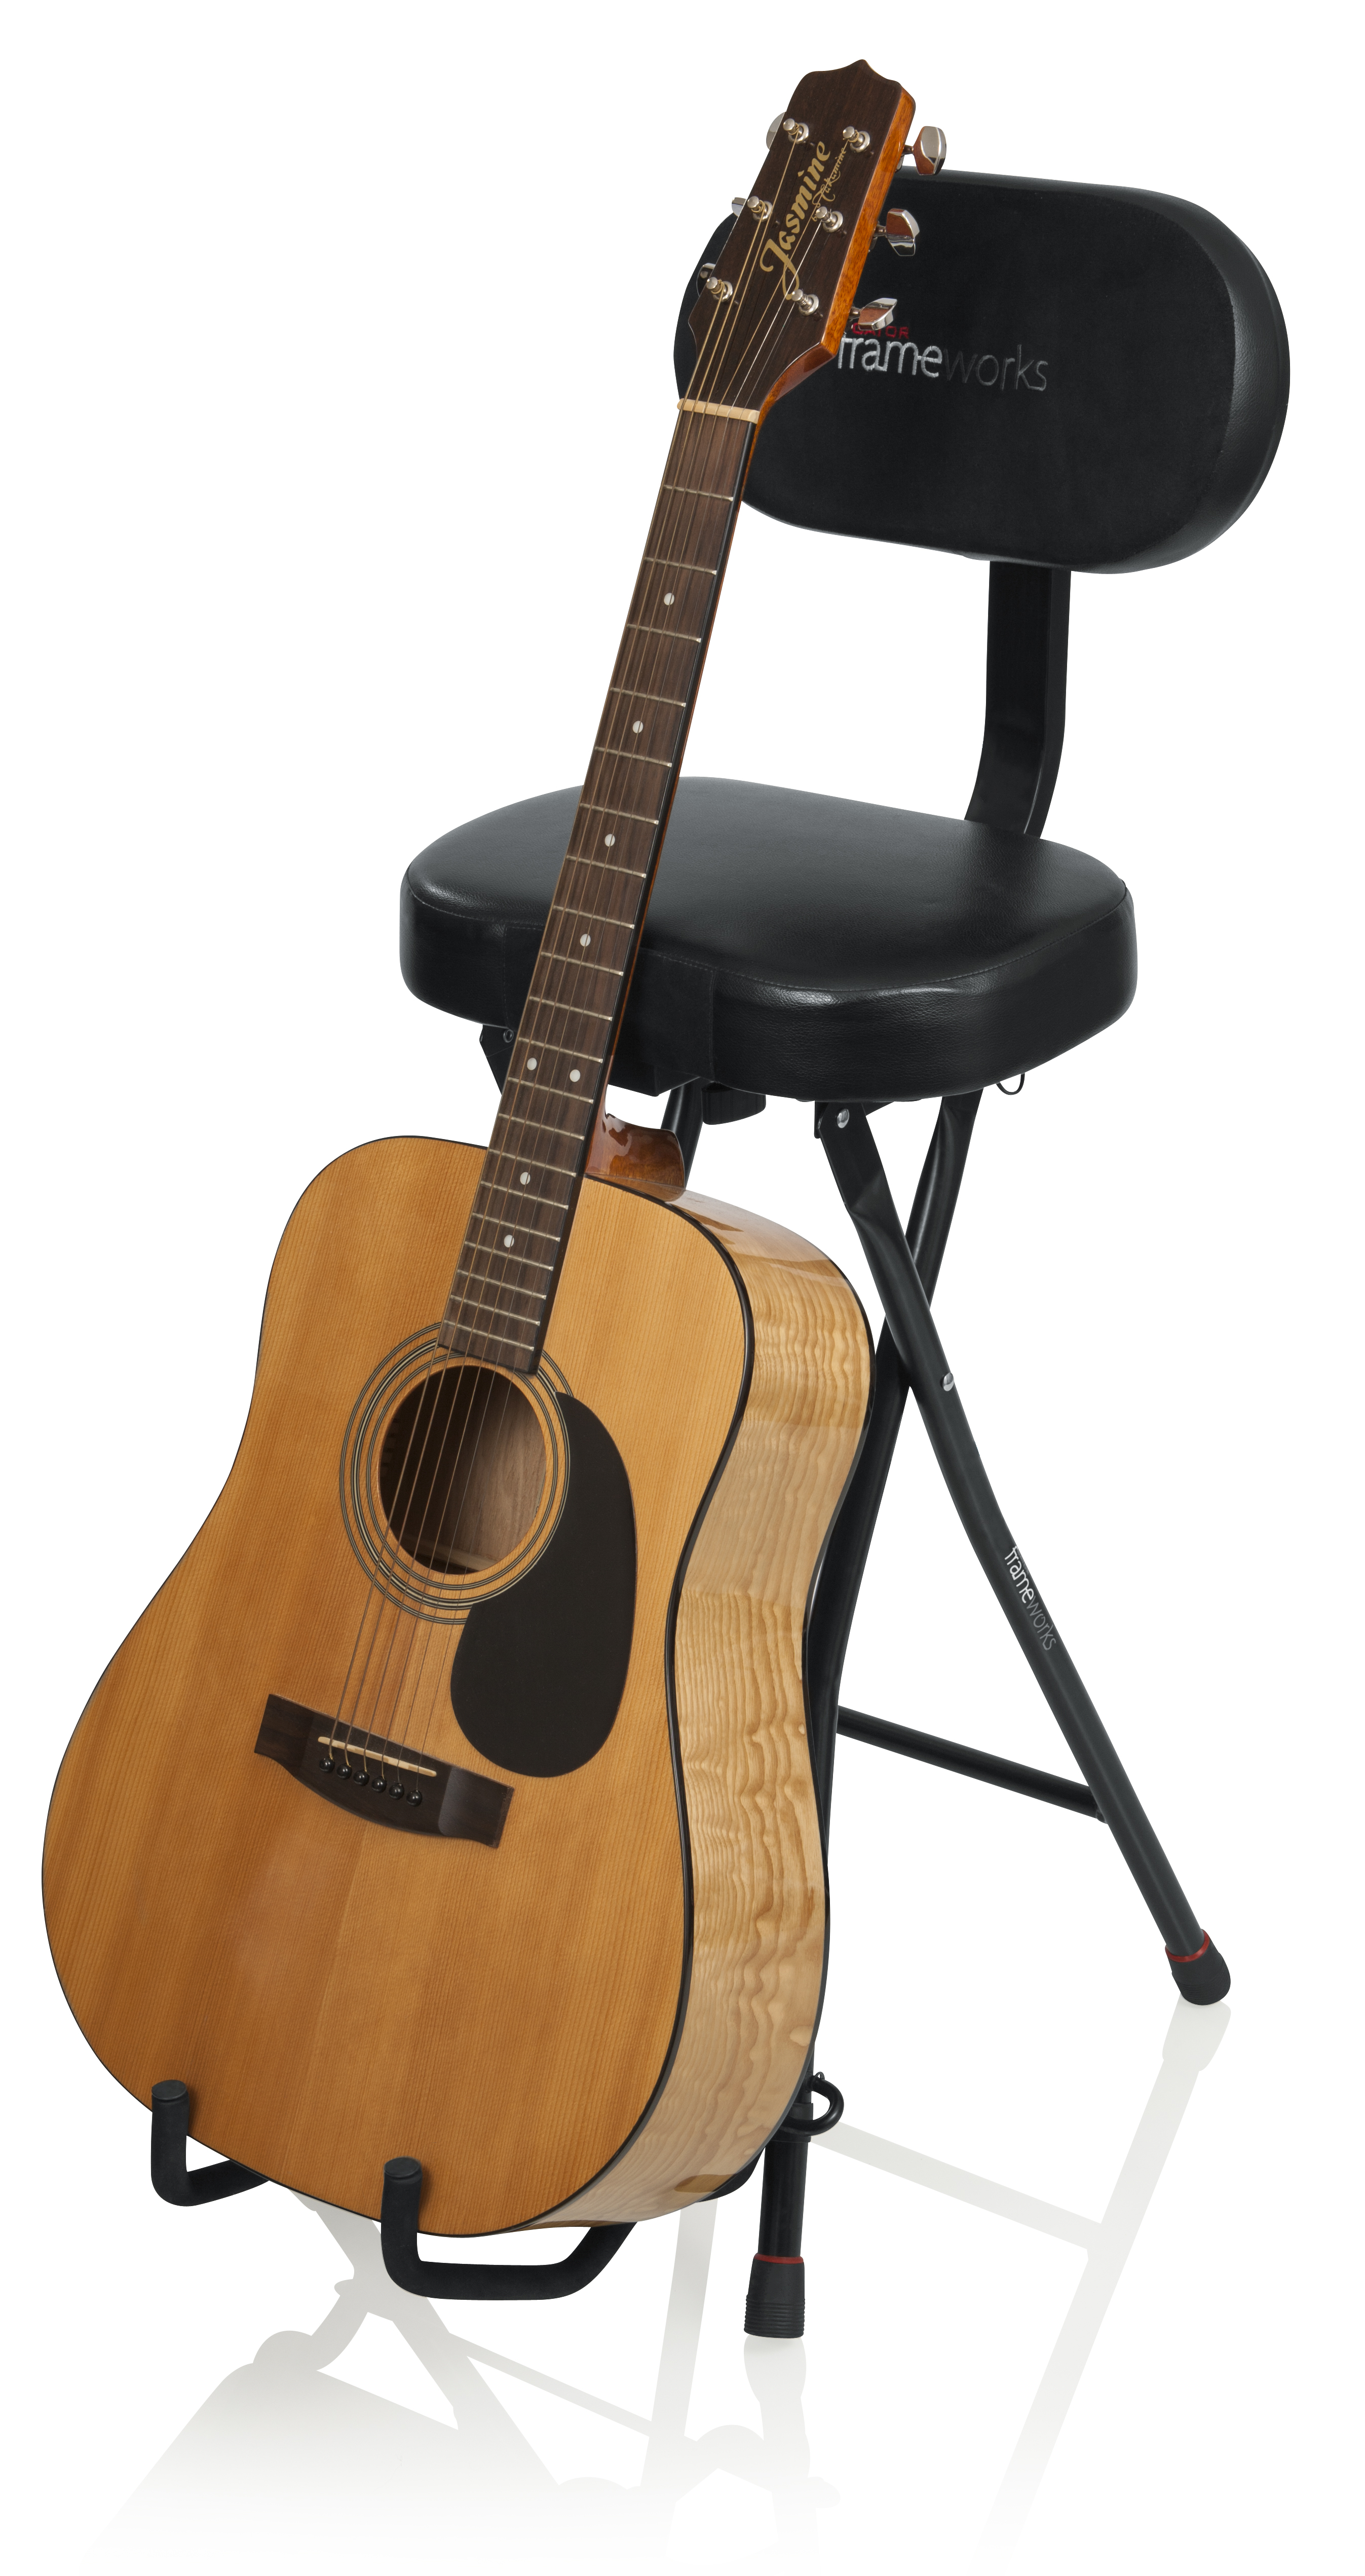 Awe Inspiring Frameworks Gfw Gtr Seat Guitar Seat Stand Onthecornerstone Fun Painted Chair Ideas Images Onthecornerstoneorg